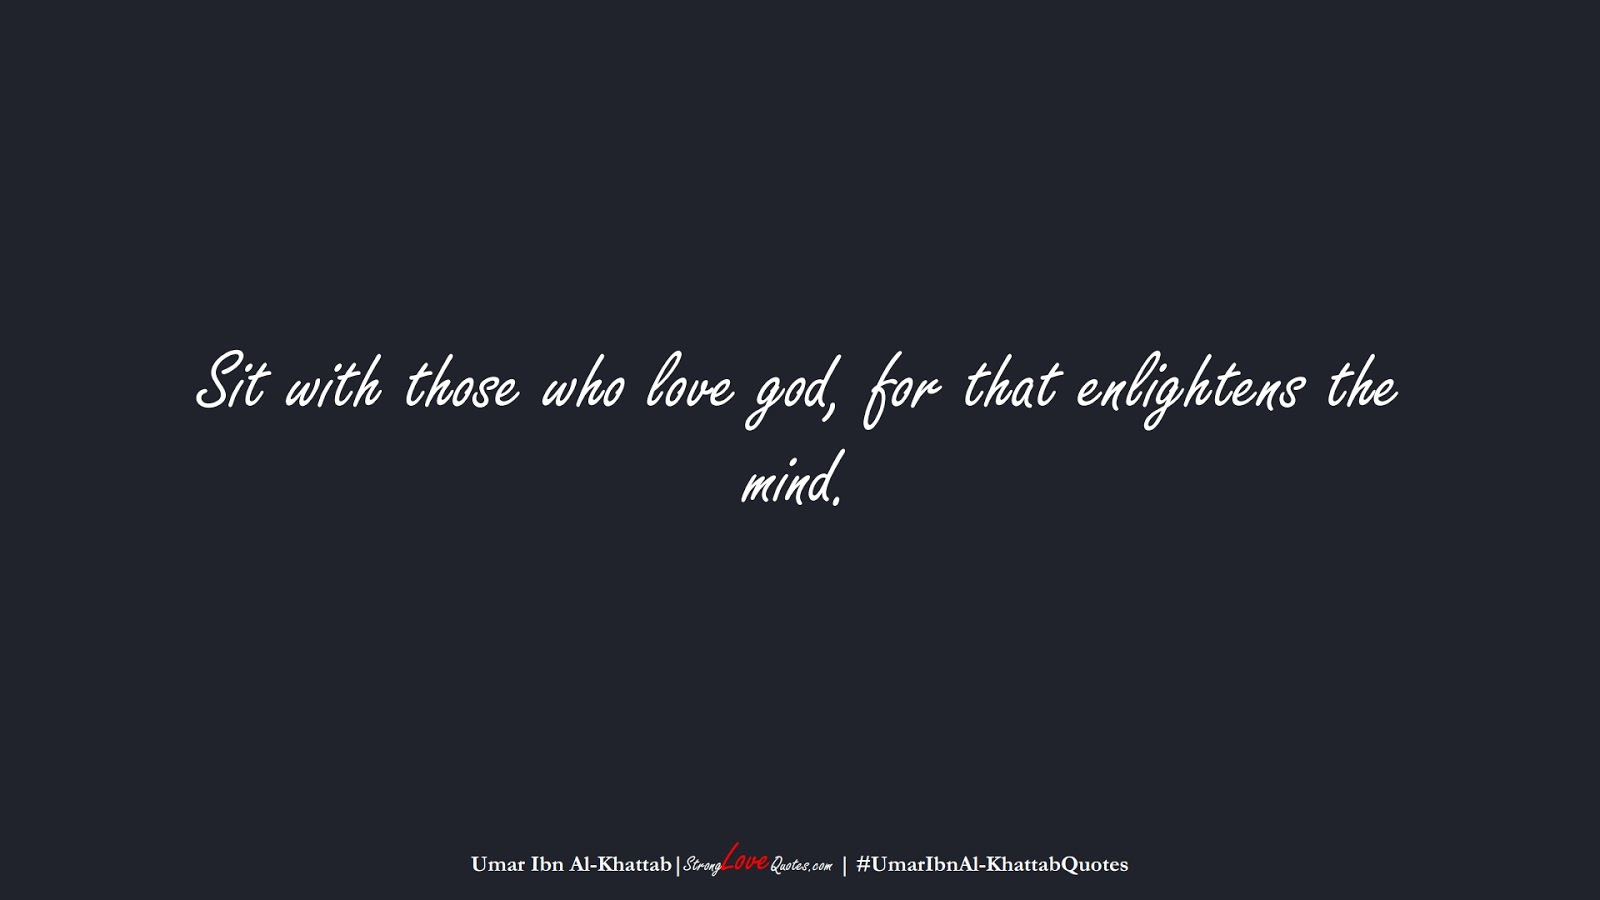 Sit with those who love god, for that enlightens the mind. (Umar Ibn Al-Khattab);  #UmarIbnAl-KhattabQuotes